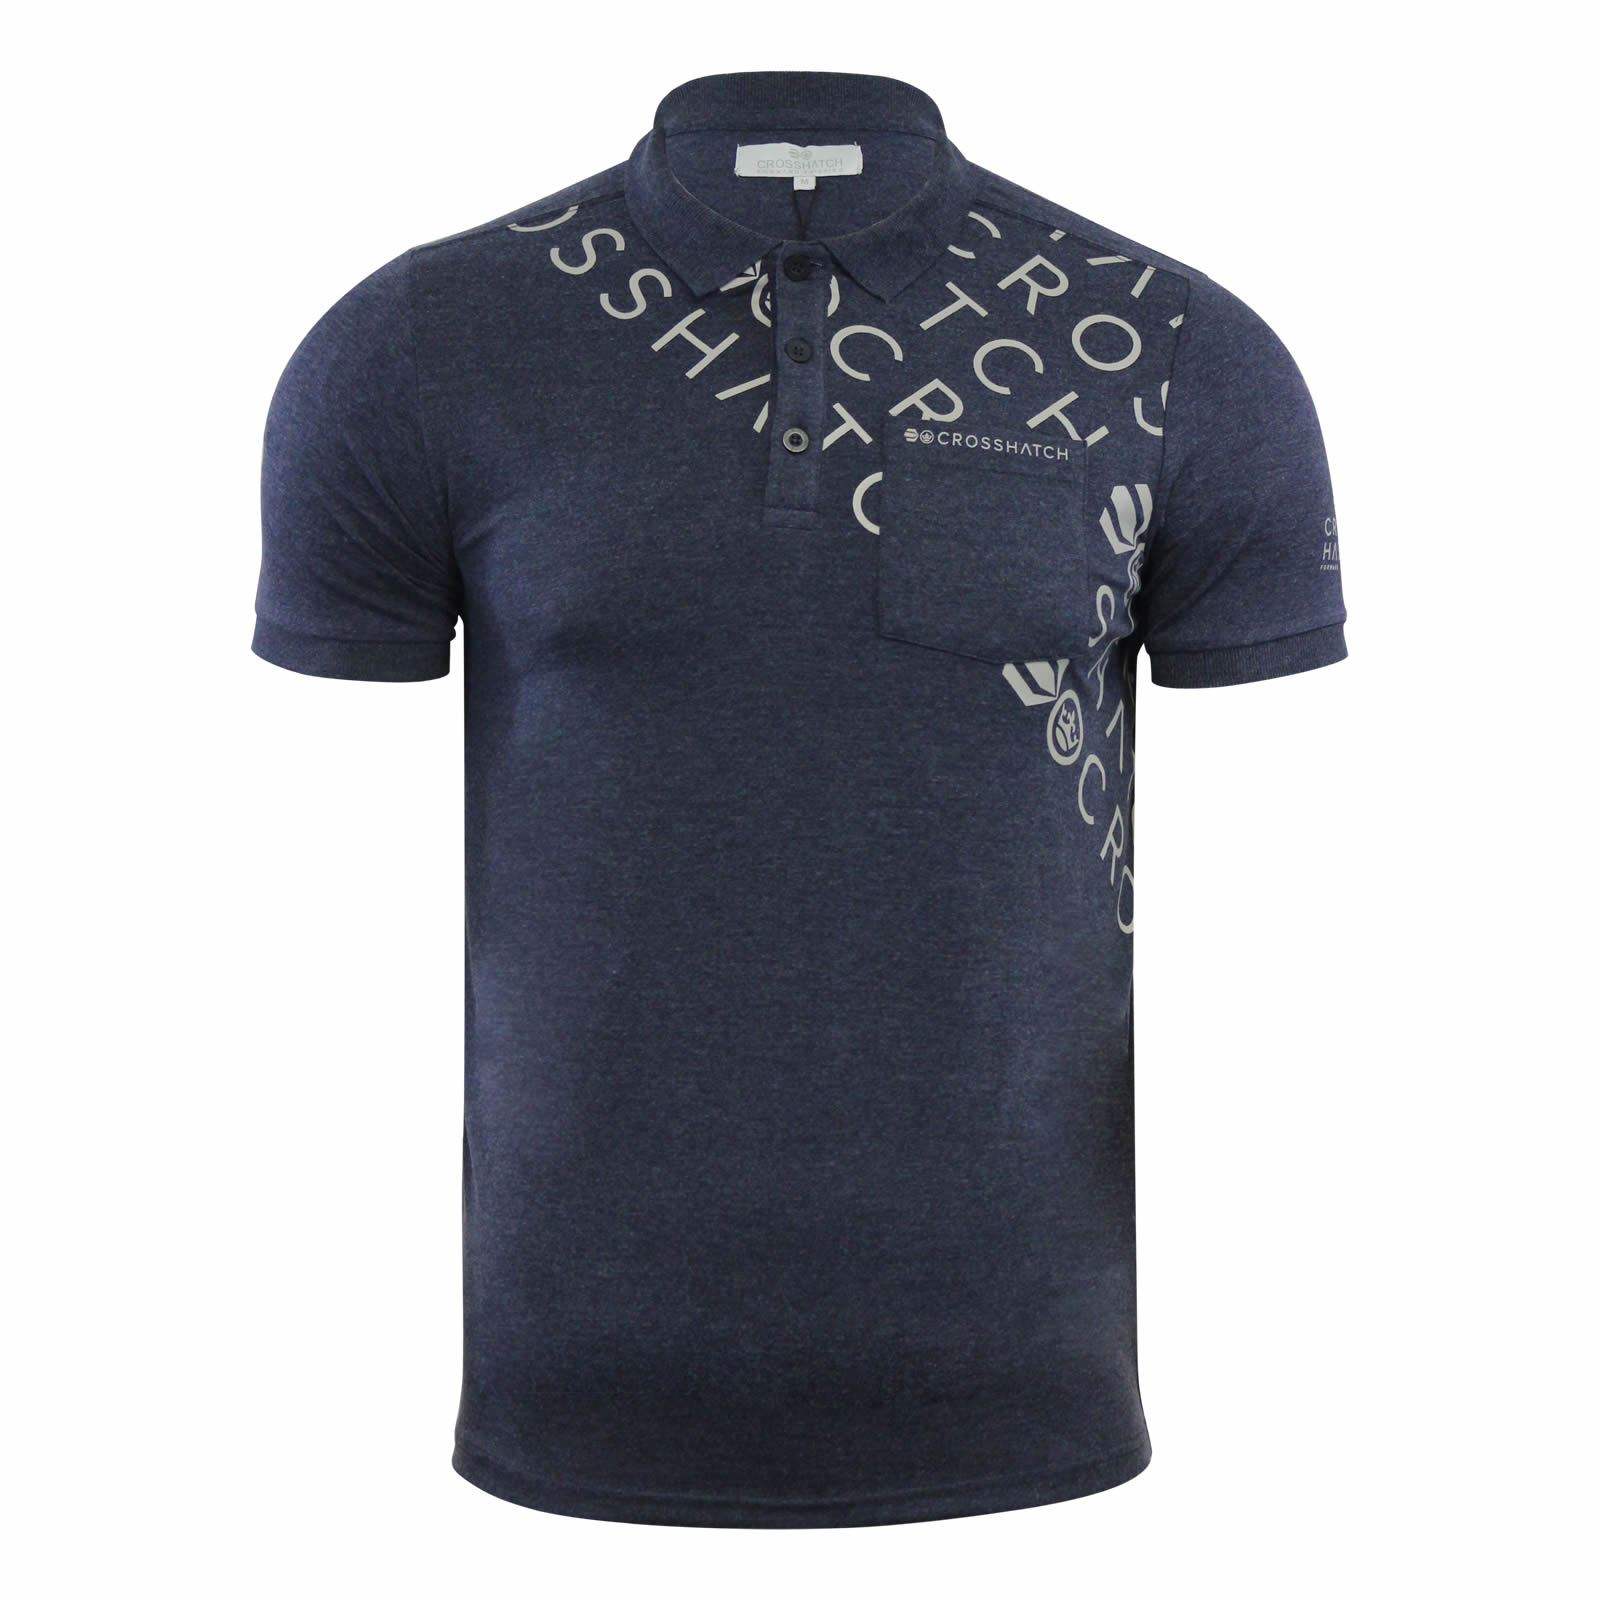 Crosshatch-Mens-Polo-T-Shirt-Pique-Polo-Cotton-Collared-Short-Sleeve-T-Shirt thumbnail 57